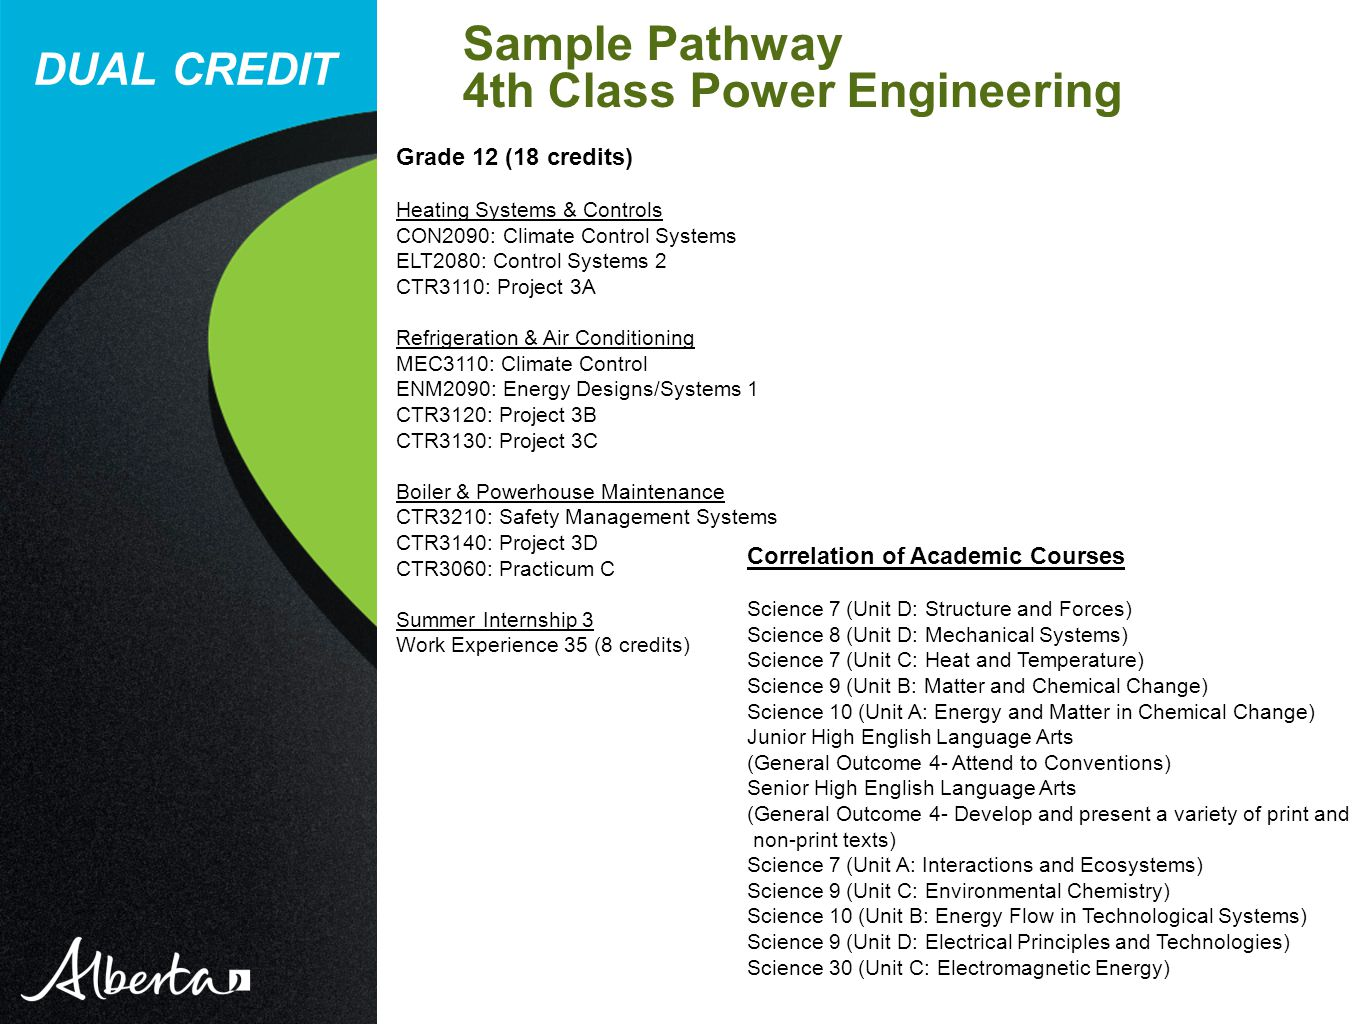 DUAL CREDIT Sample Pathway 4th Class Power Engineering Grade 12 (18 credits) Heating Systems & Controls CON2090: Climate Control Systems ELT2080: Control Systems 2 CTR3110: Project 3A Refrigeration & Air Conditioning MEC3110: Climate Control ENM2090: Energy Designs/Systems 1 CTR3120: Project 3B CTR3130: Project 3C Boiler & Powerhouse Maintenance CTR3210: Safety Management Systems CTR3140: Project 3D CTR3060: Practicum C Summer Internship 3 Work Experience 35 (8 credits) Correlation of Academic Courses Science 7 (Unit D: Structure and Forces) Science 8 (Unit D: Mechanical Systems) Science 7 (Unit C: Heat and Temperature) Science 9 (Unit B: Matter and Chemical Change) Science 10 (Unit A: Energy and Matter in Chemical Change) Junior High English Language Arts (General Outcome 4- Attend to Conventions) Senior High English Language Arts (General Outcome 4- Develop and present a variety of print and non-print texts) Science 7 (Unit A: Interactions and Ecosystems) Science 9 (Unit C: Environmental Chemistry) Science 10 (Unit B: Energy Flow in Technological Systems) Science 9 (Unit D: Electrical Principles and Technologies) Science 30 (Unit C: Electromagnetic Energy)